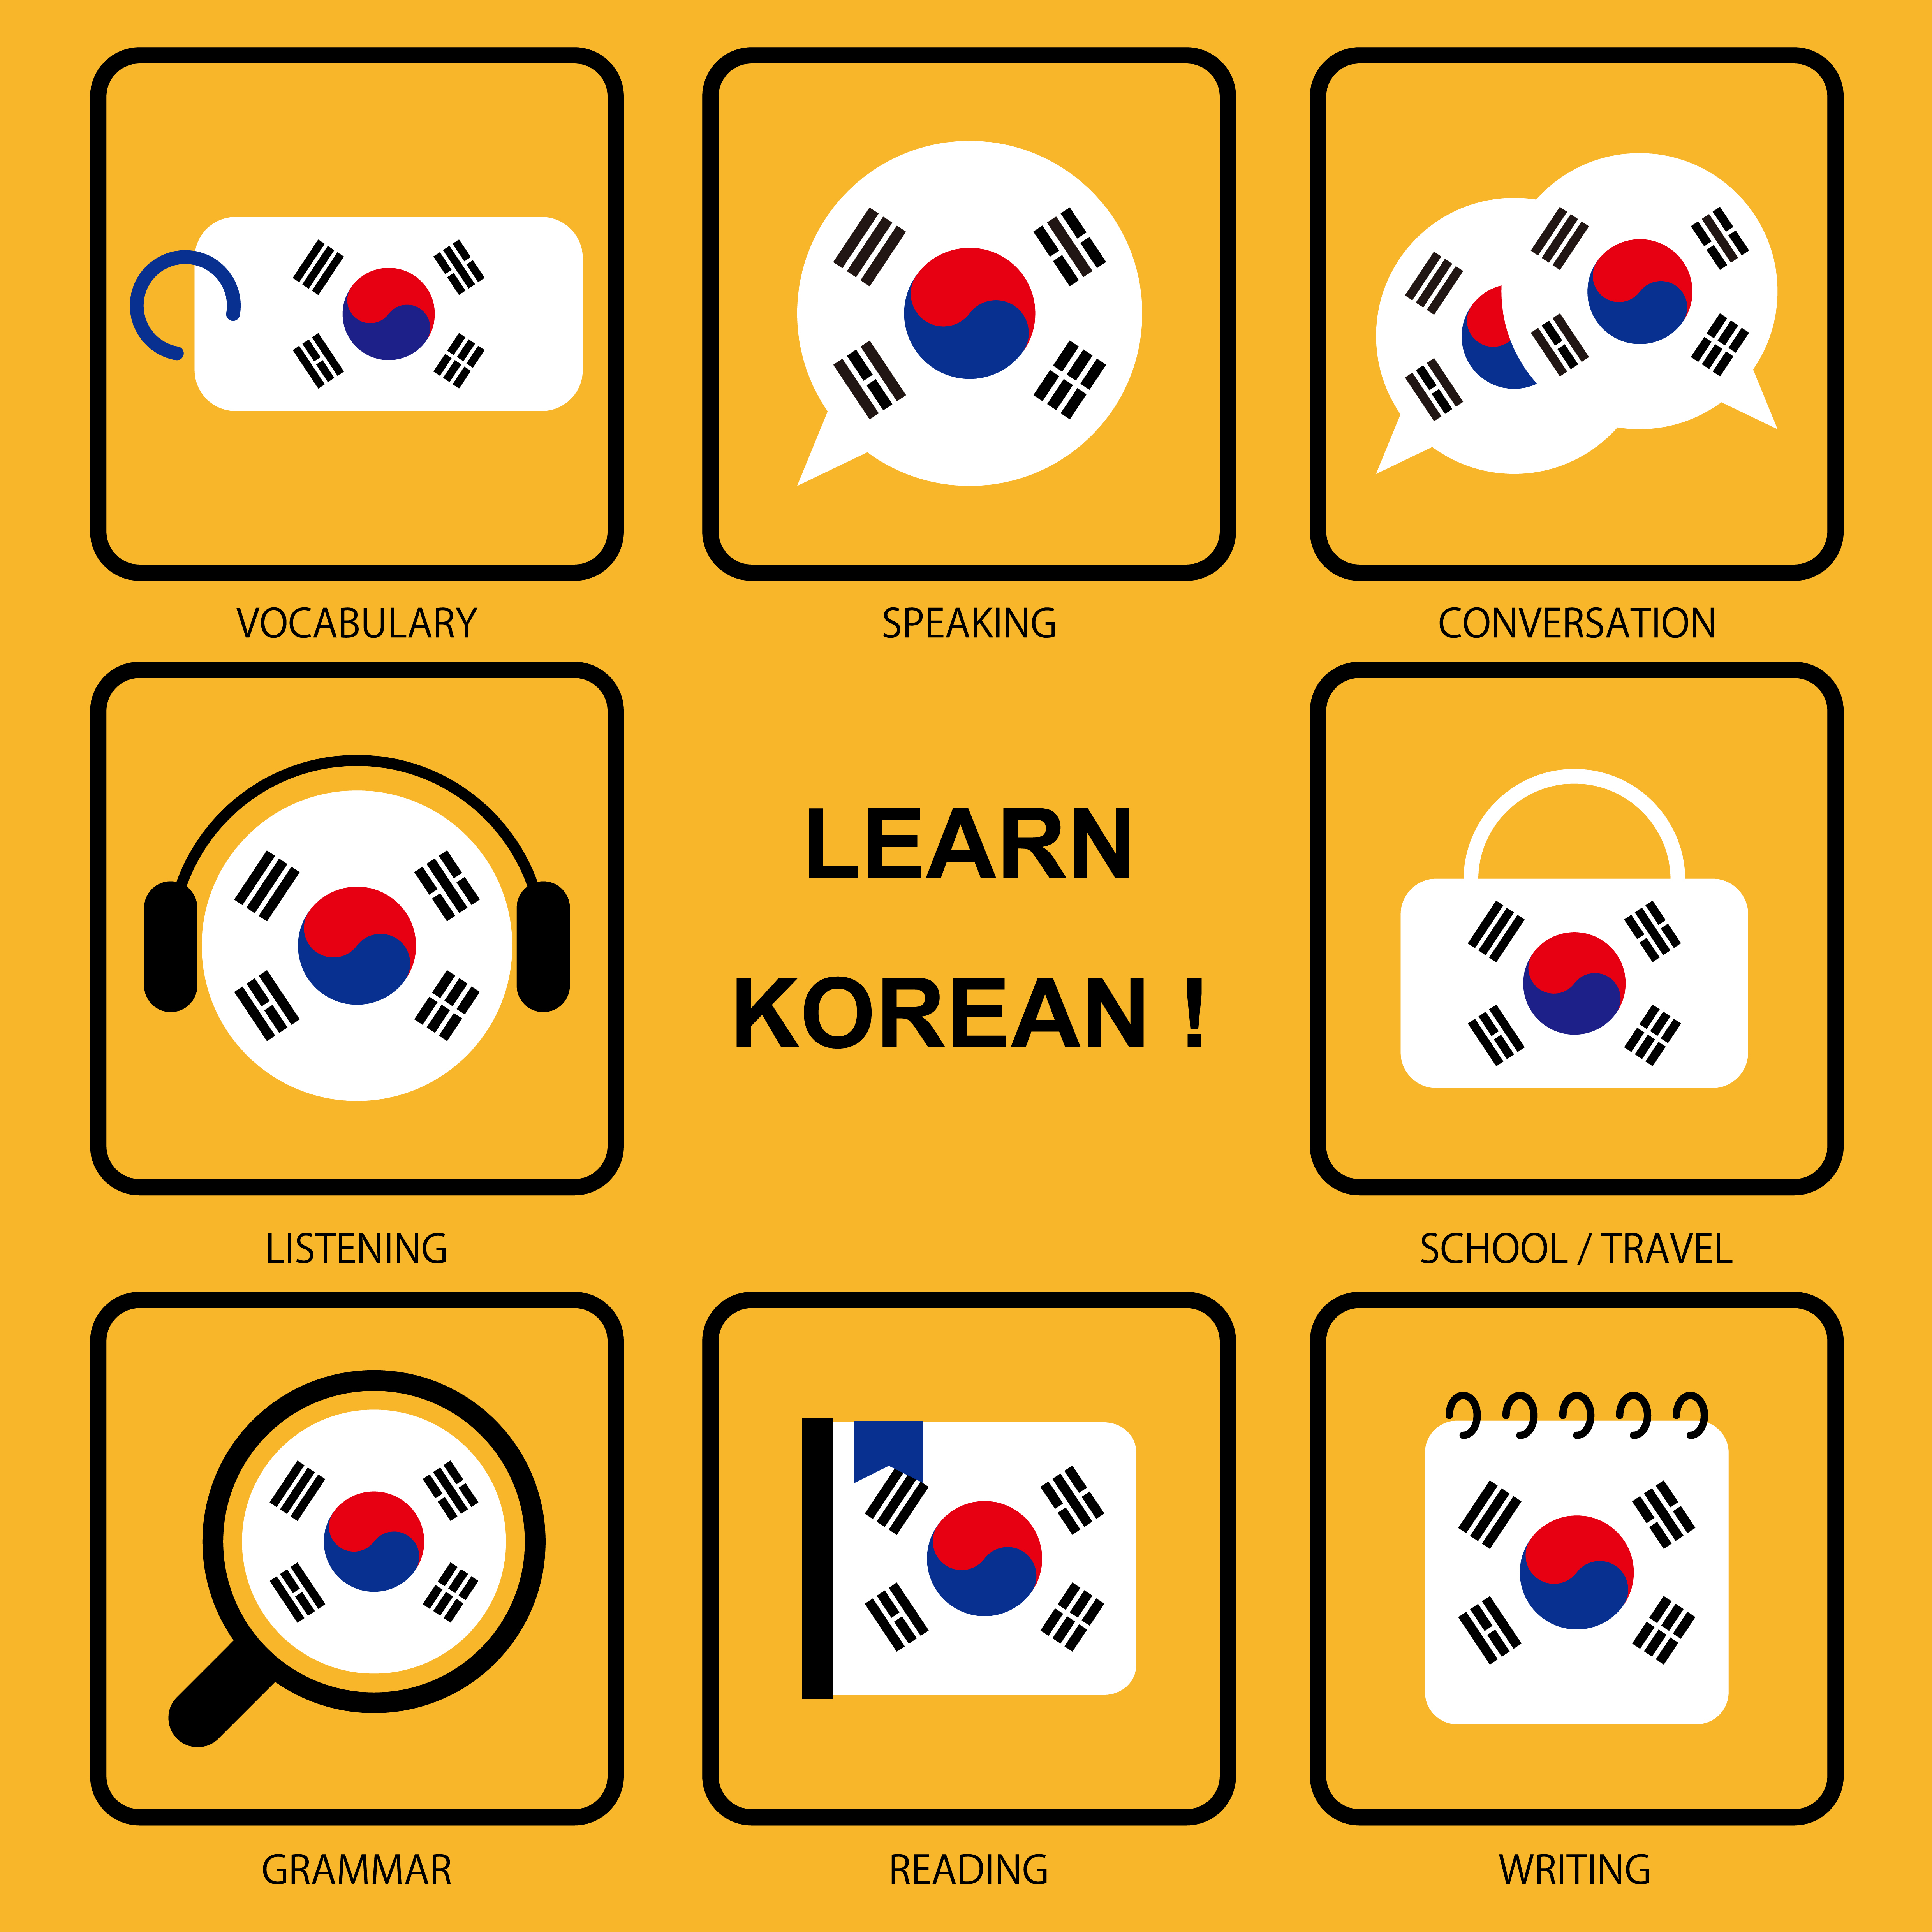 The Best Korean Learning Sources in 2019 | OptiLingo